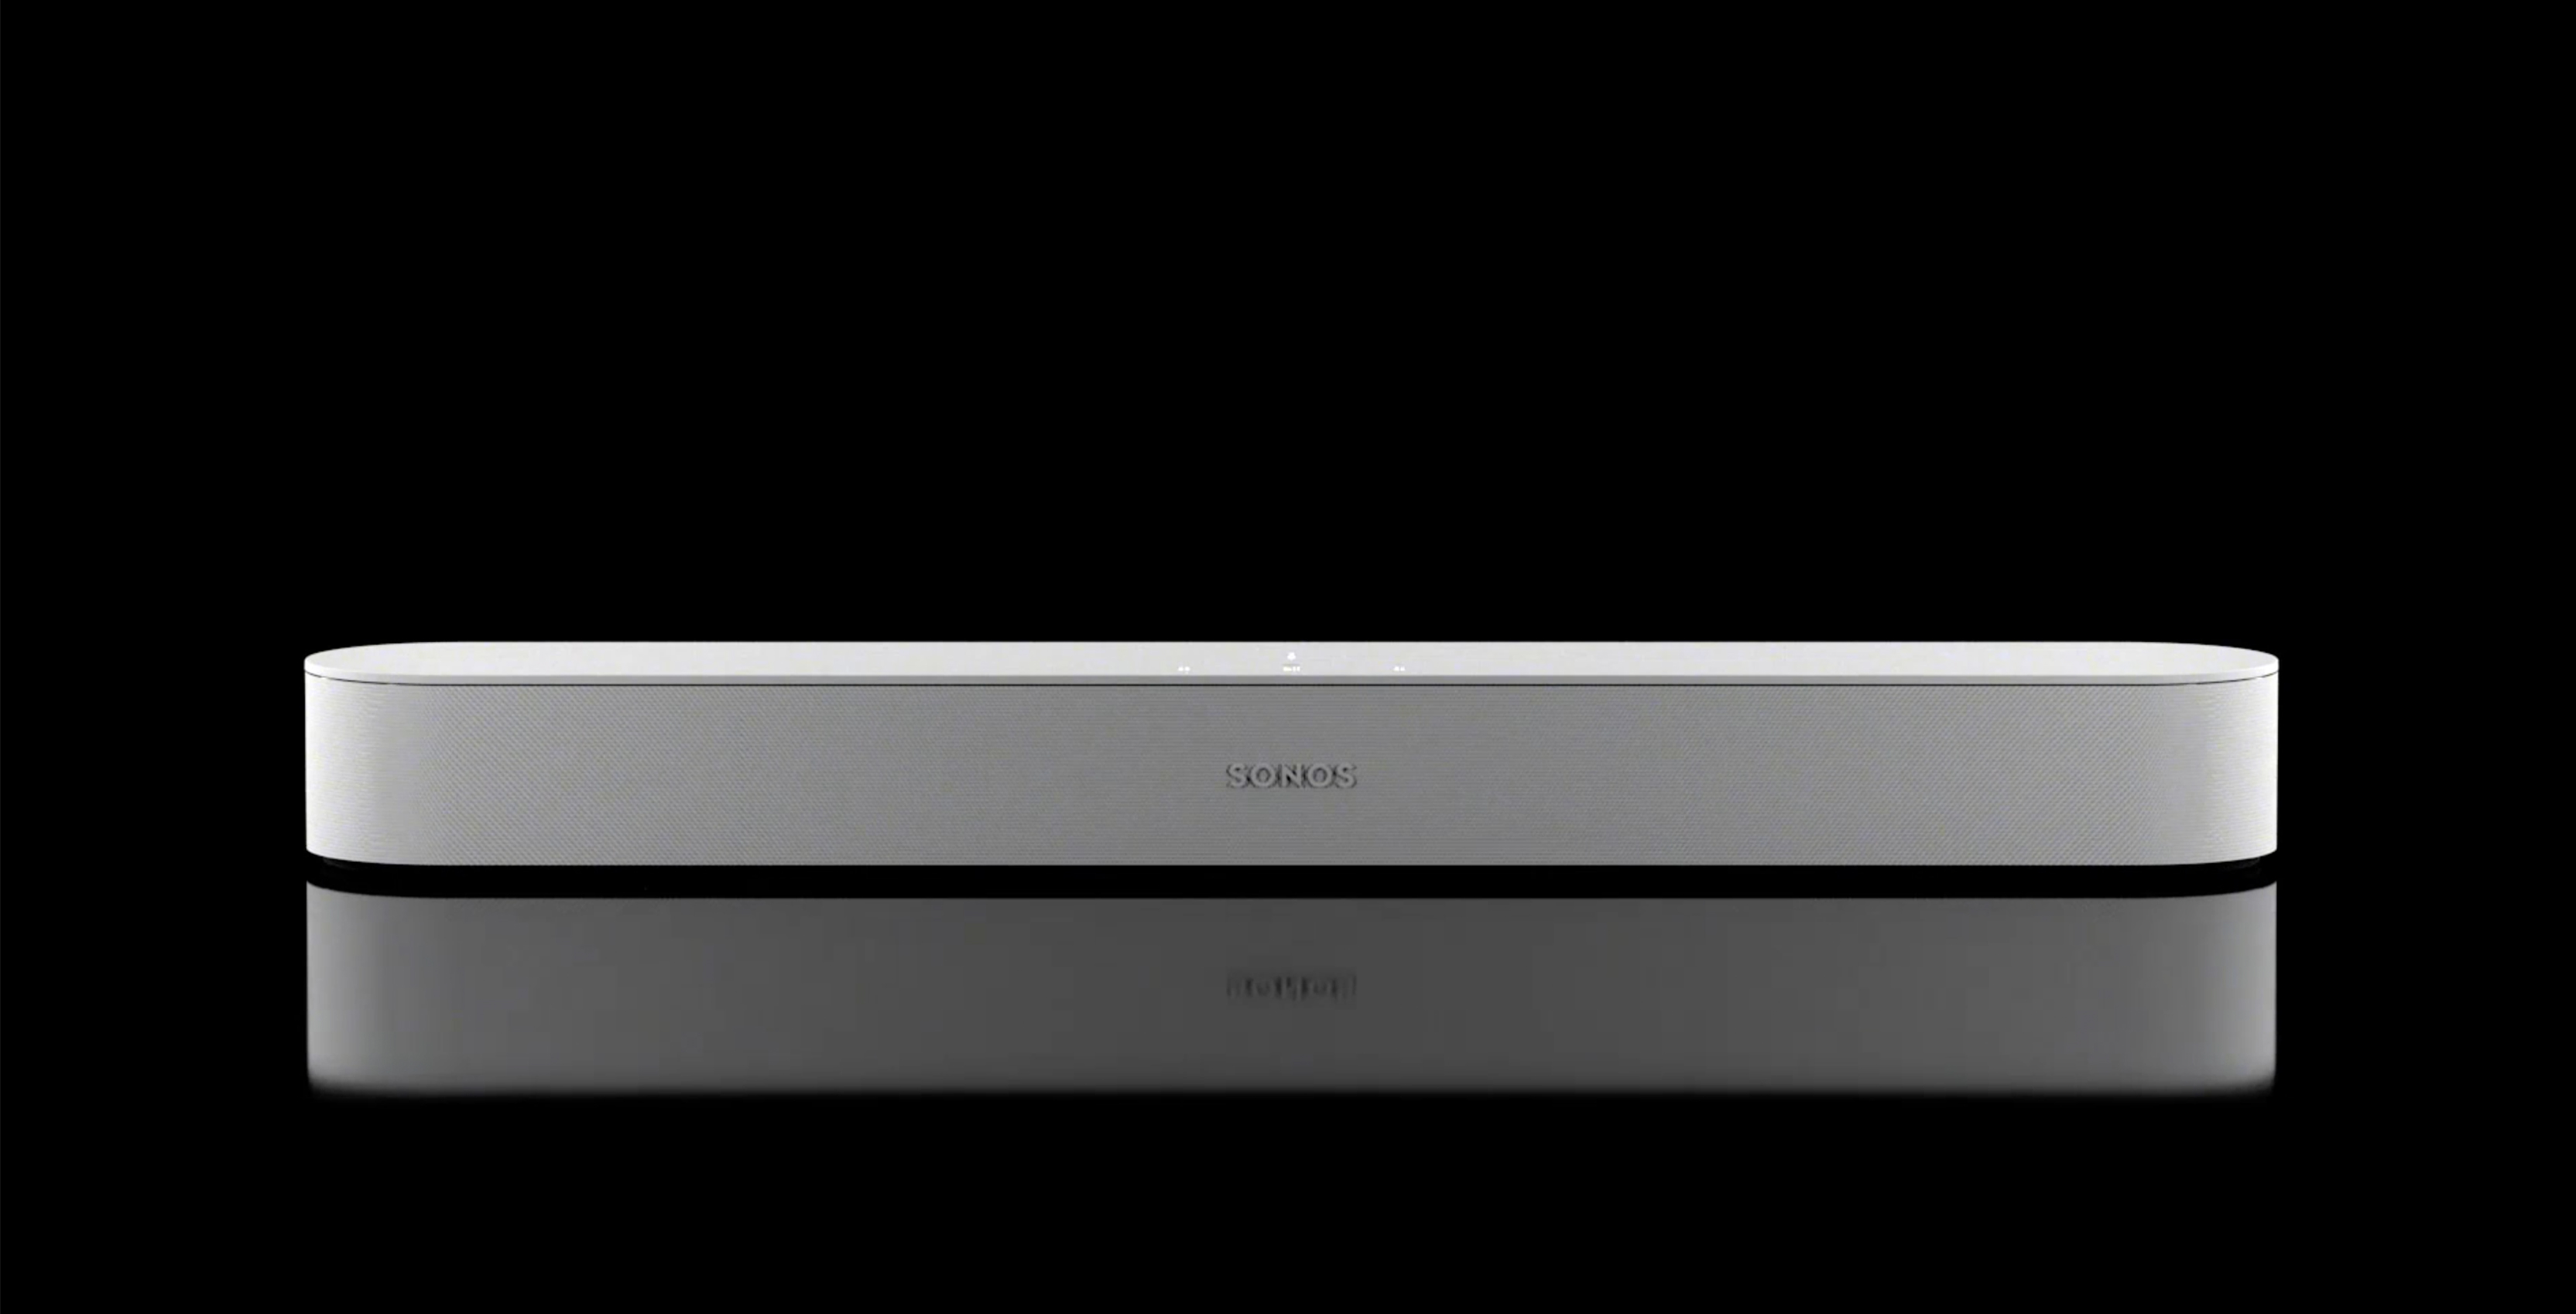 Sonos unveils Beam - a soundbar with voice control and HDMI